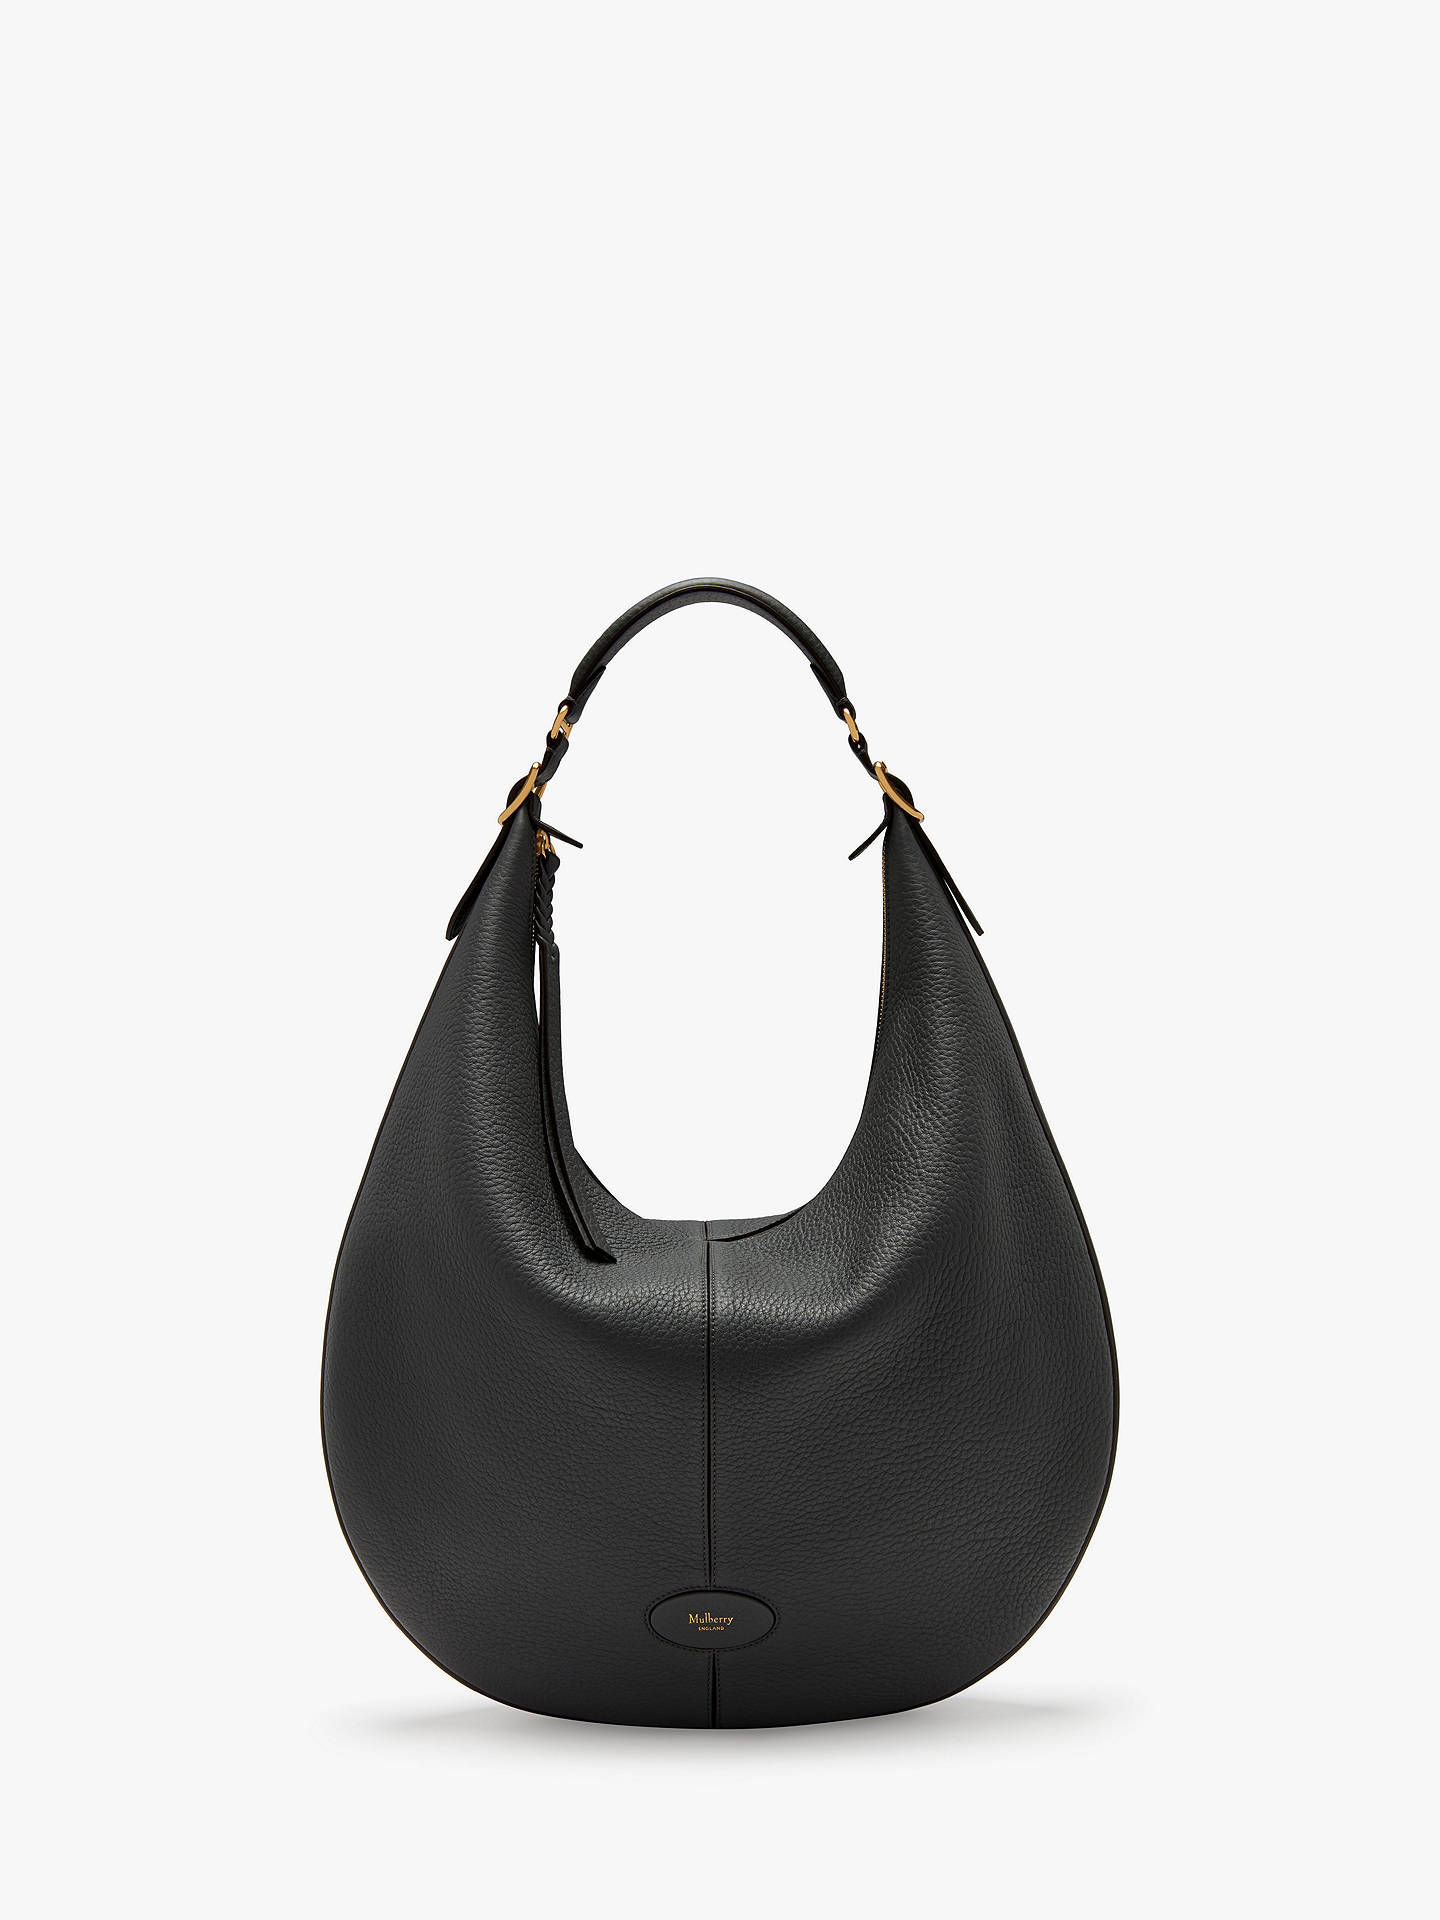 Mulberry Large Selby Classic Grain Leather Hobo Bag at John Lewis ... 414aba4a52288